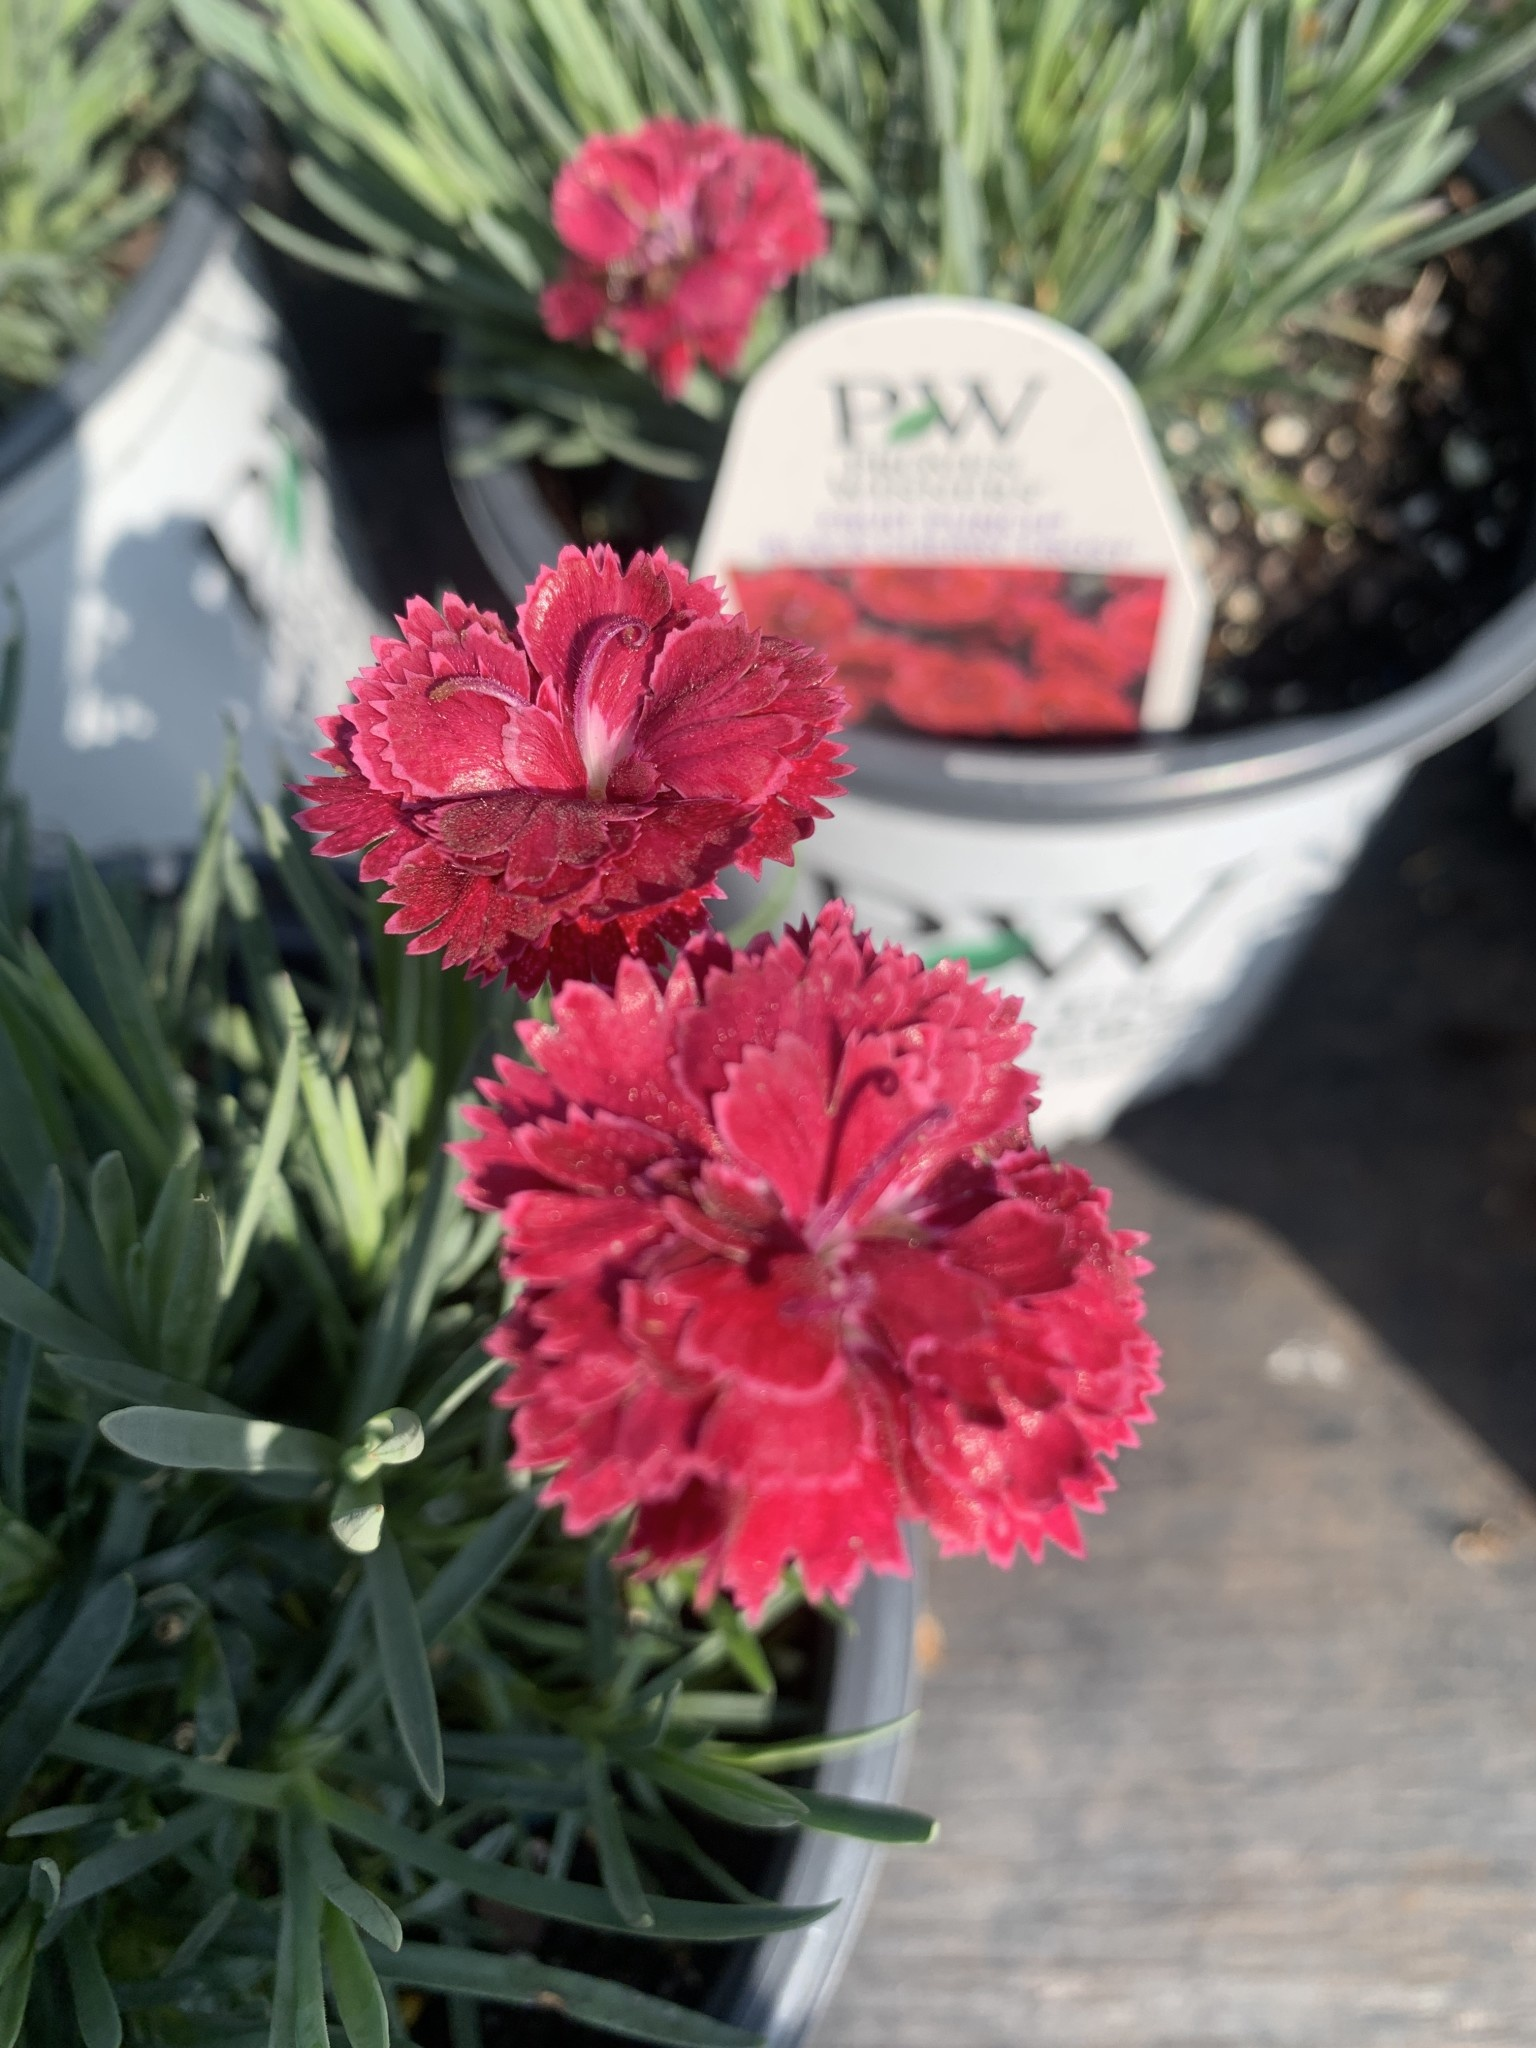 Dianthus Black Cherry Frost, Cheddar Pinks #1